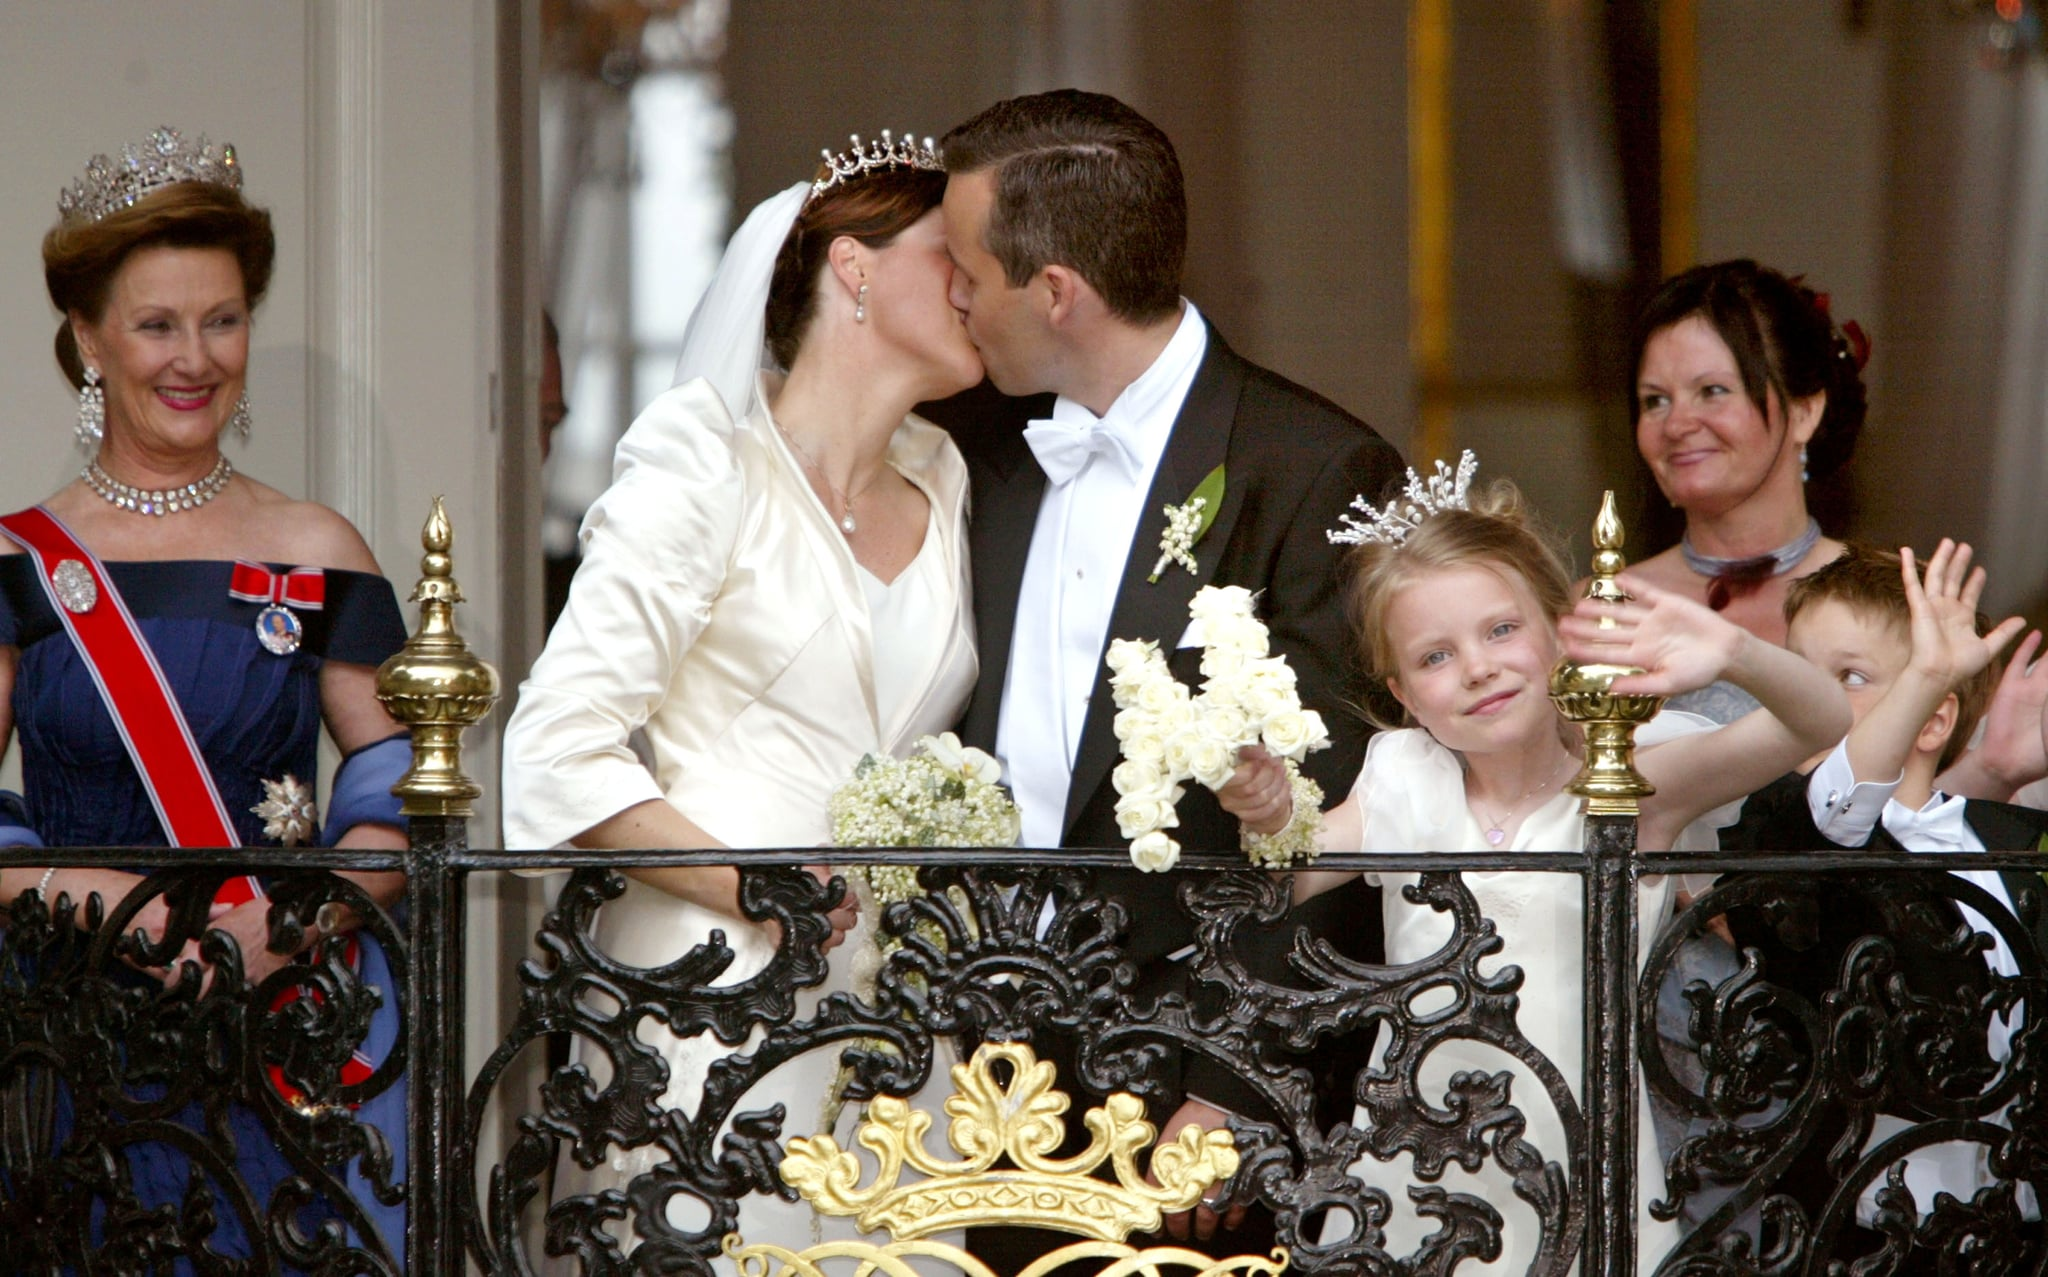 Princess-Martha-Ari-Behn-Bride-Princess-Martha-Louise.jpg